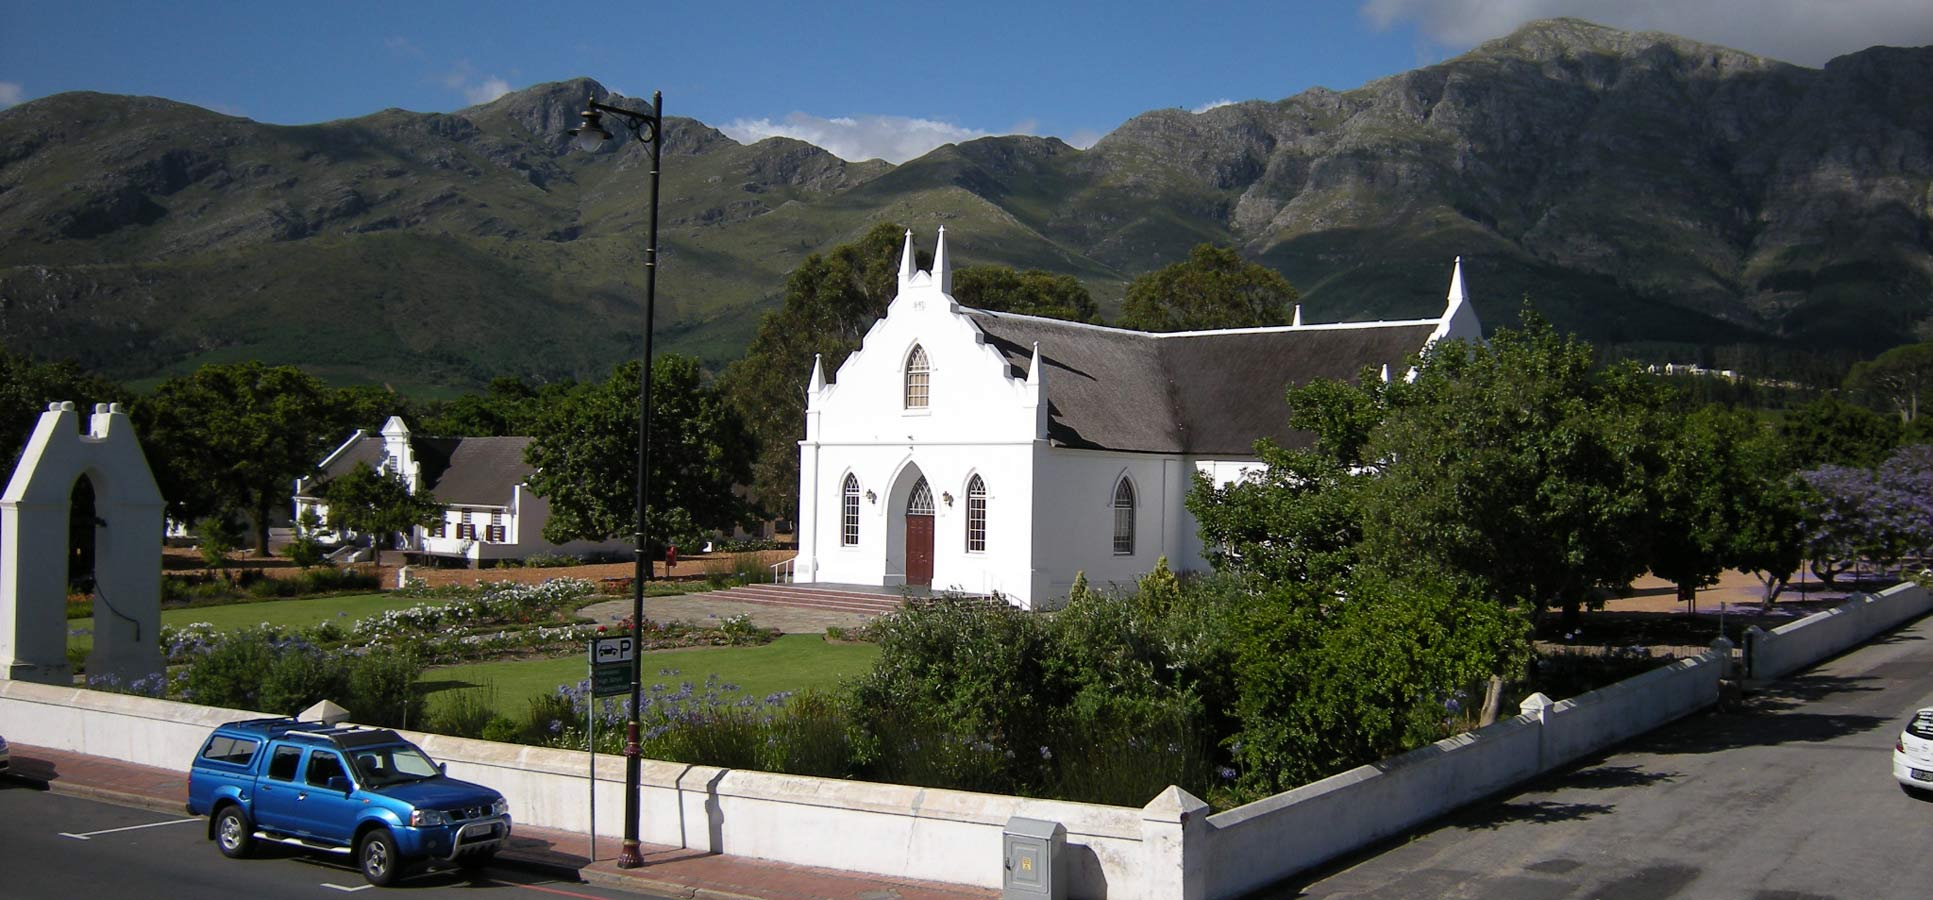 Travel Jimmy travel reviews Franschhoek South Africa